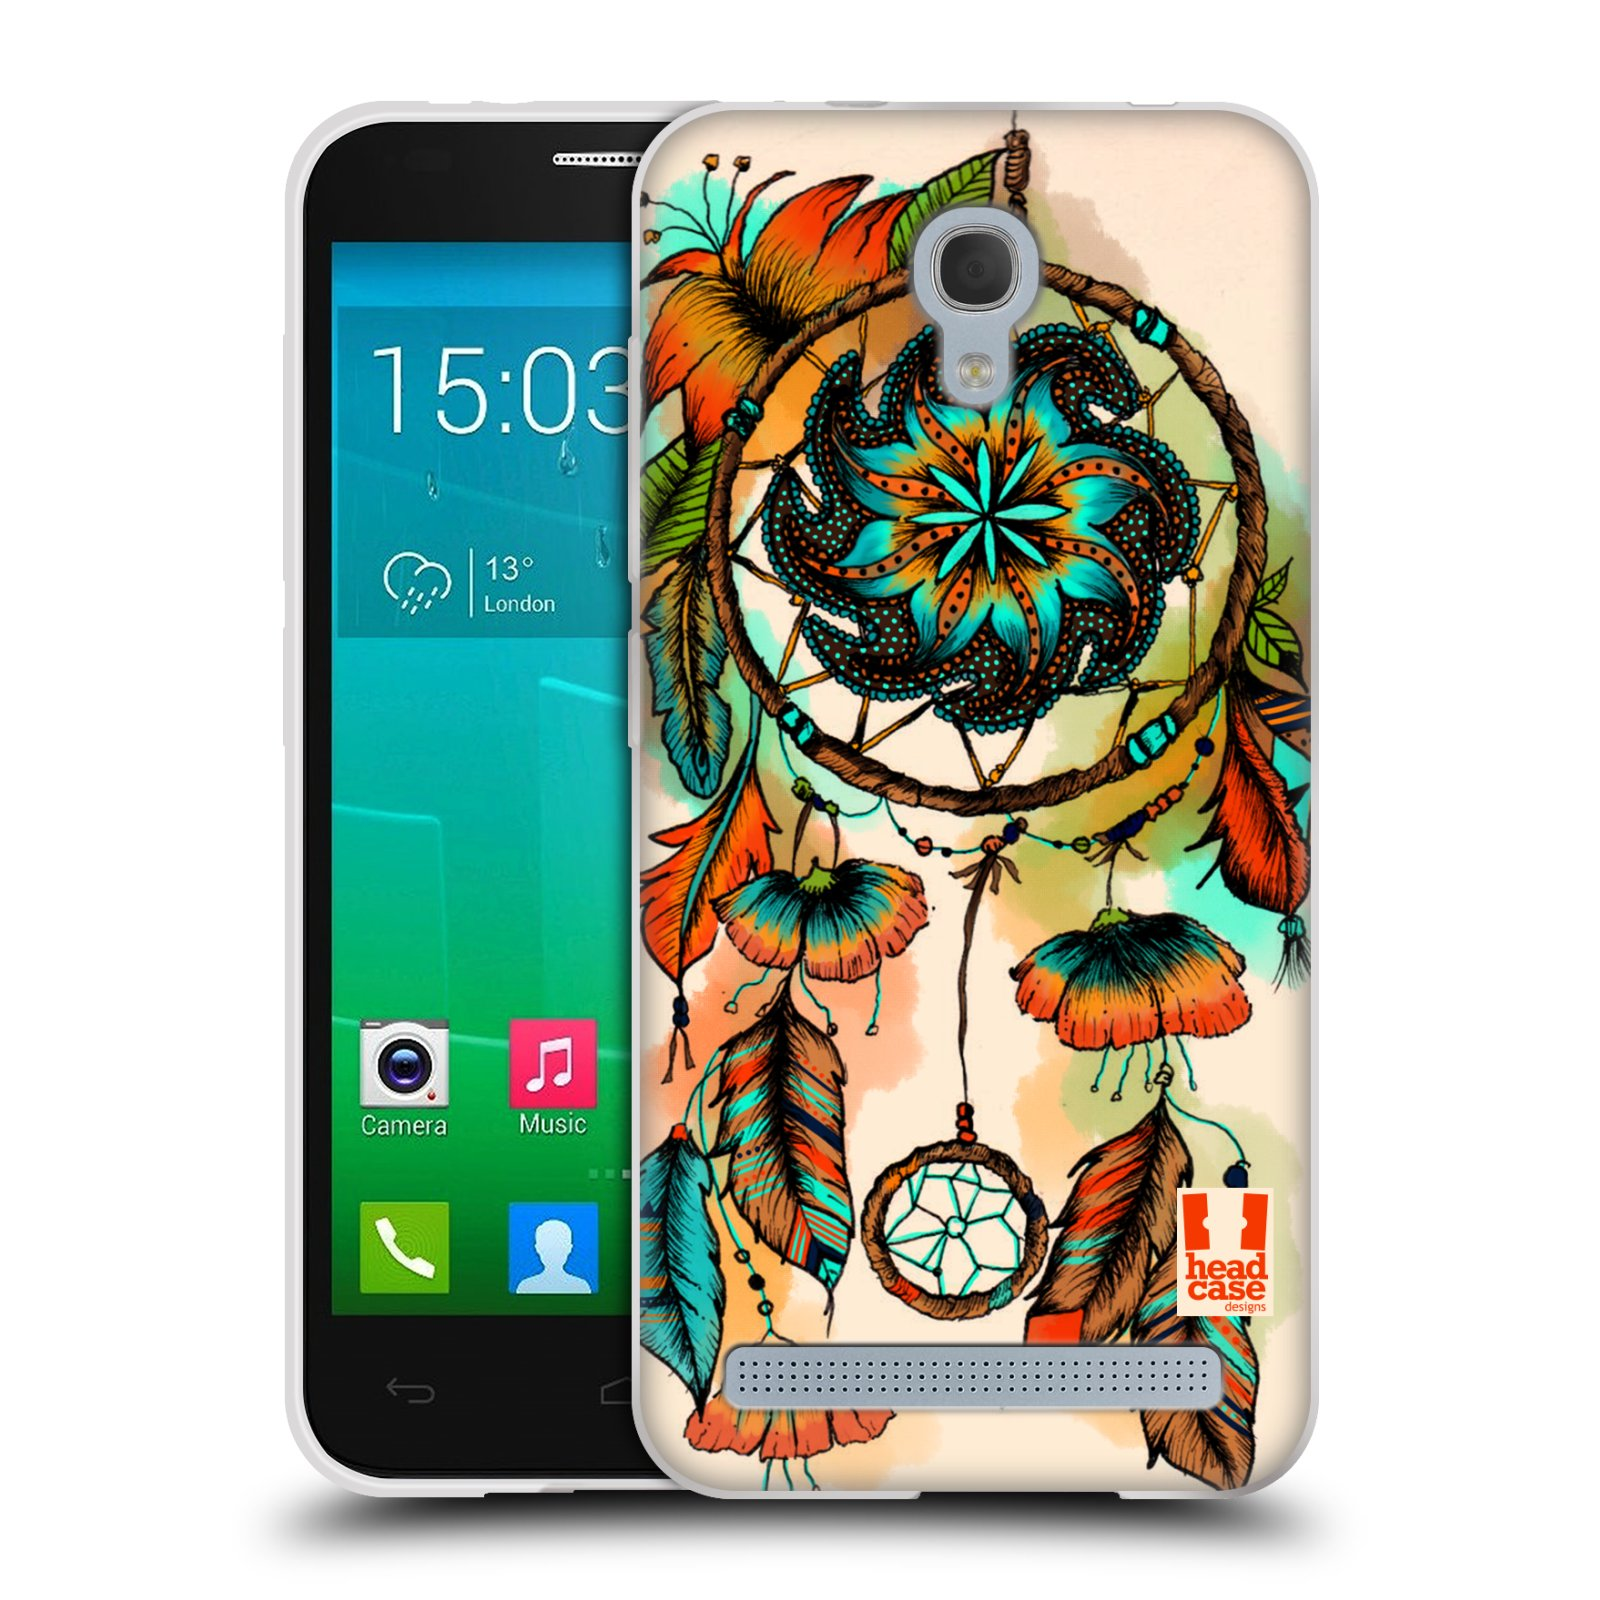 Silikonové pouzdro na mobil Alcatel One Touch Idol 2 Mini S 6036Y HEAD CASE BLOOM APRICOT